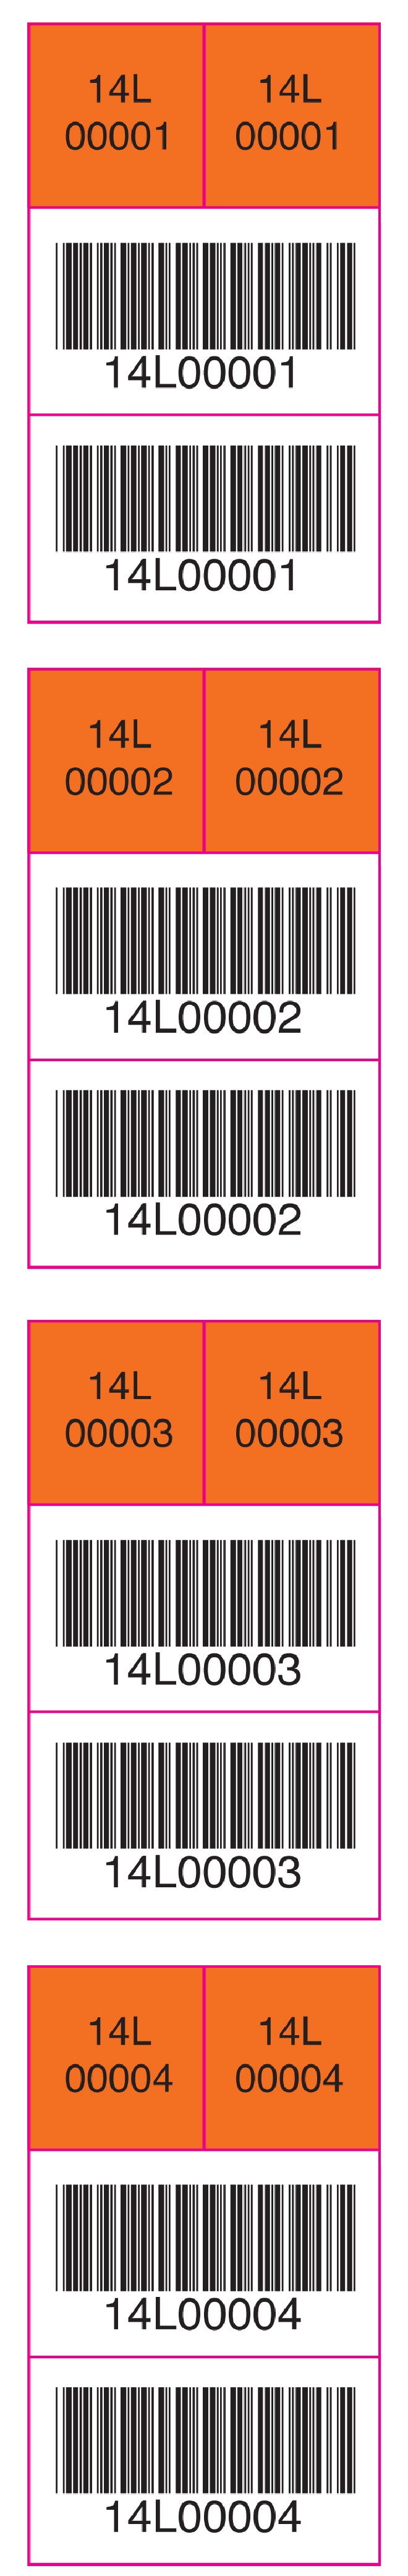 Media Library - Barcode sample 1